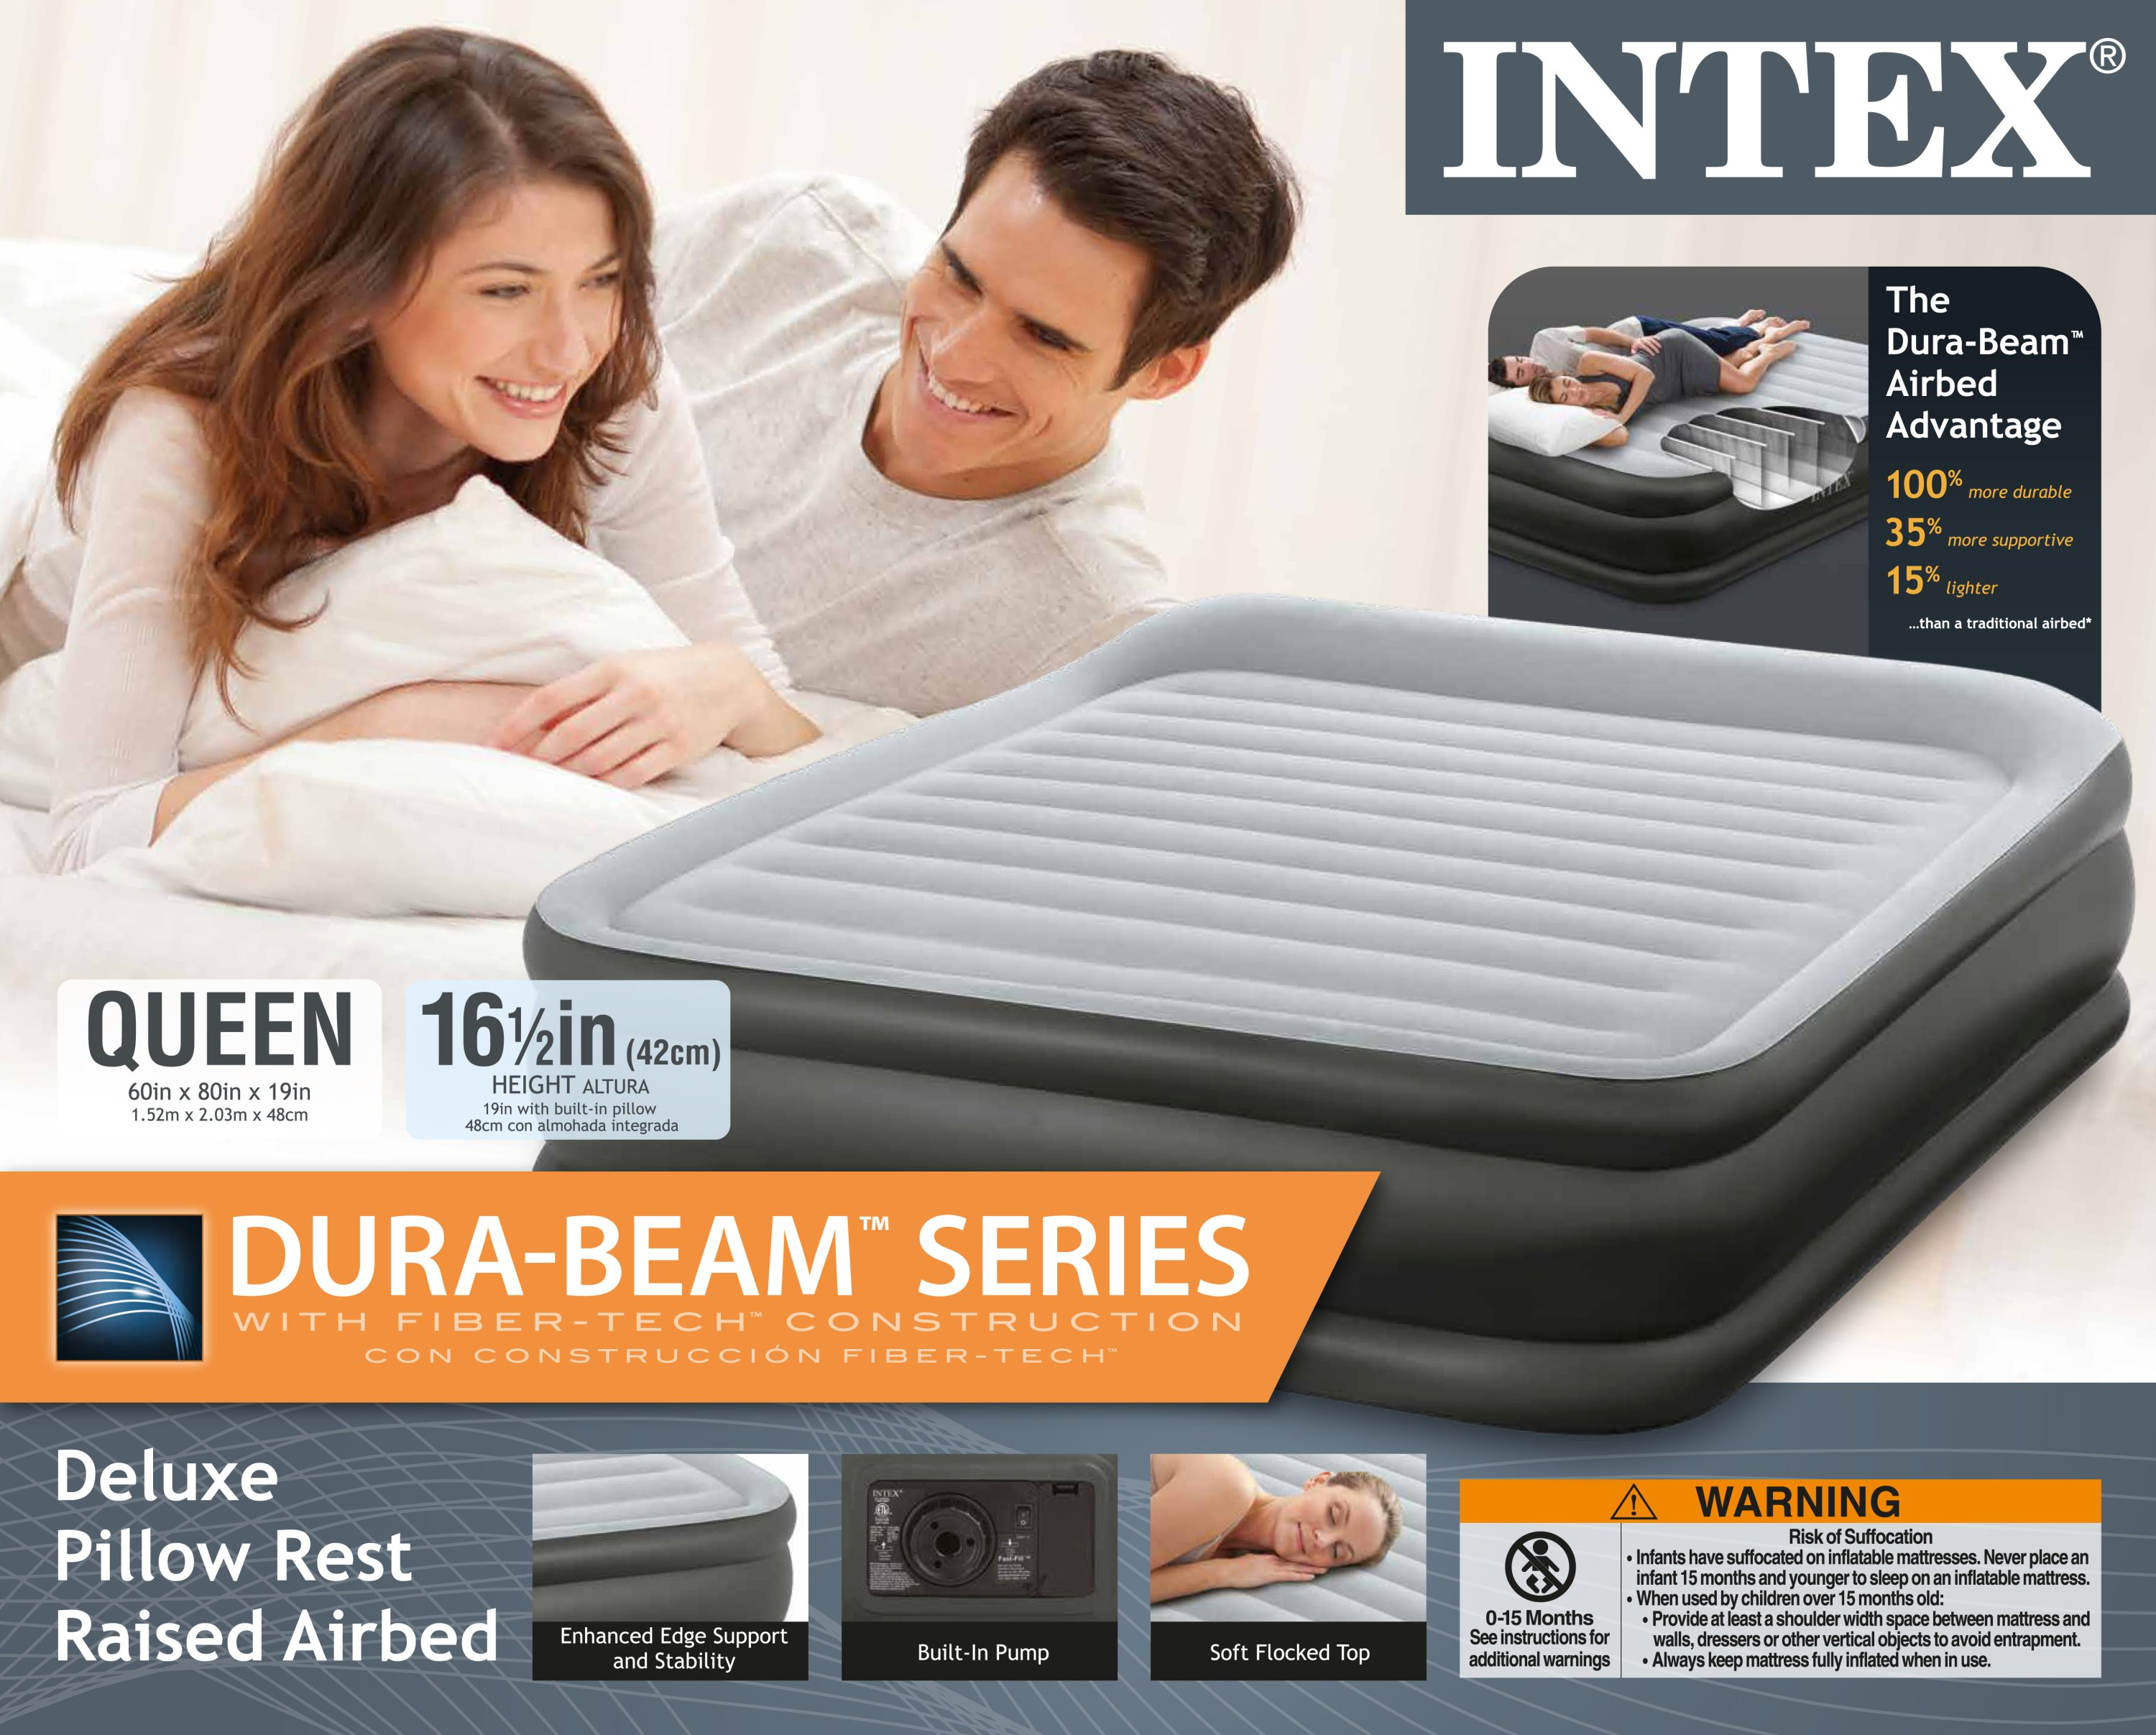 Intex Queen Deluxe Pillow Rest Fiber Tech Raised Air Bed